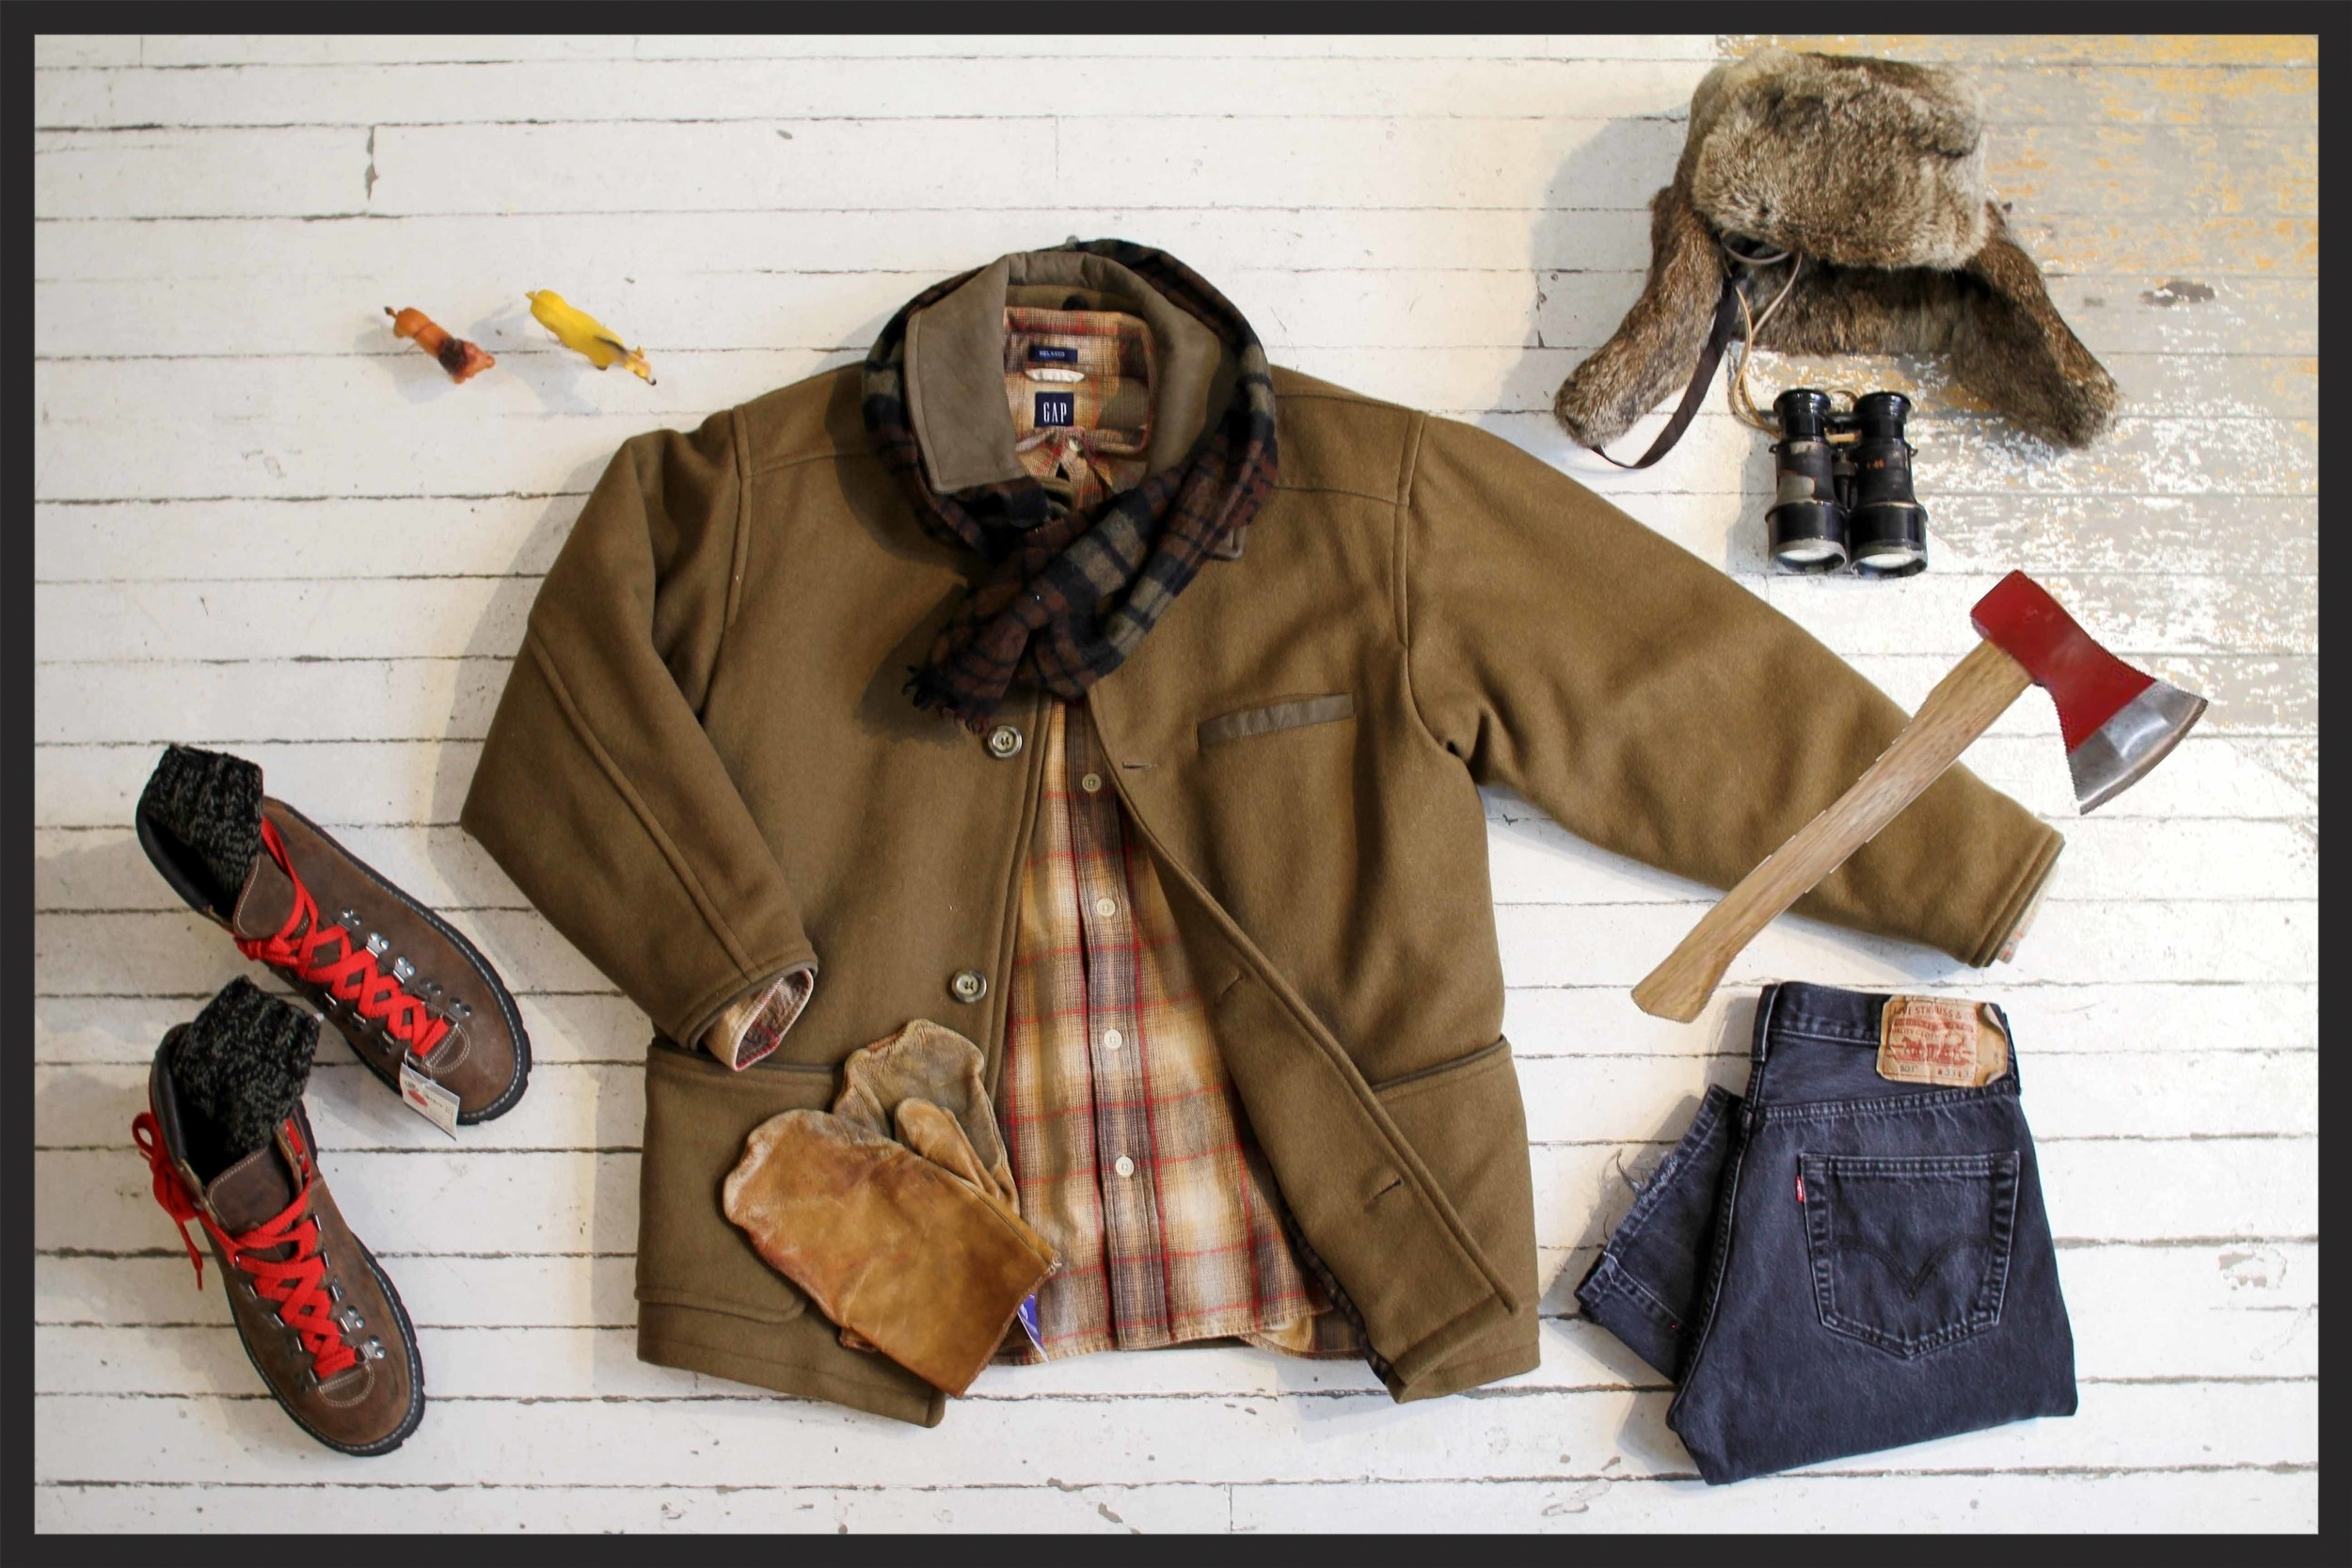 Coat: $69, flannel: $32, Levi's jeans: $52, boots: $52, mitts: $22, fur hat: $36, socks: $16, scarf: $24, toy animals: $3